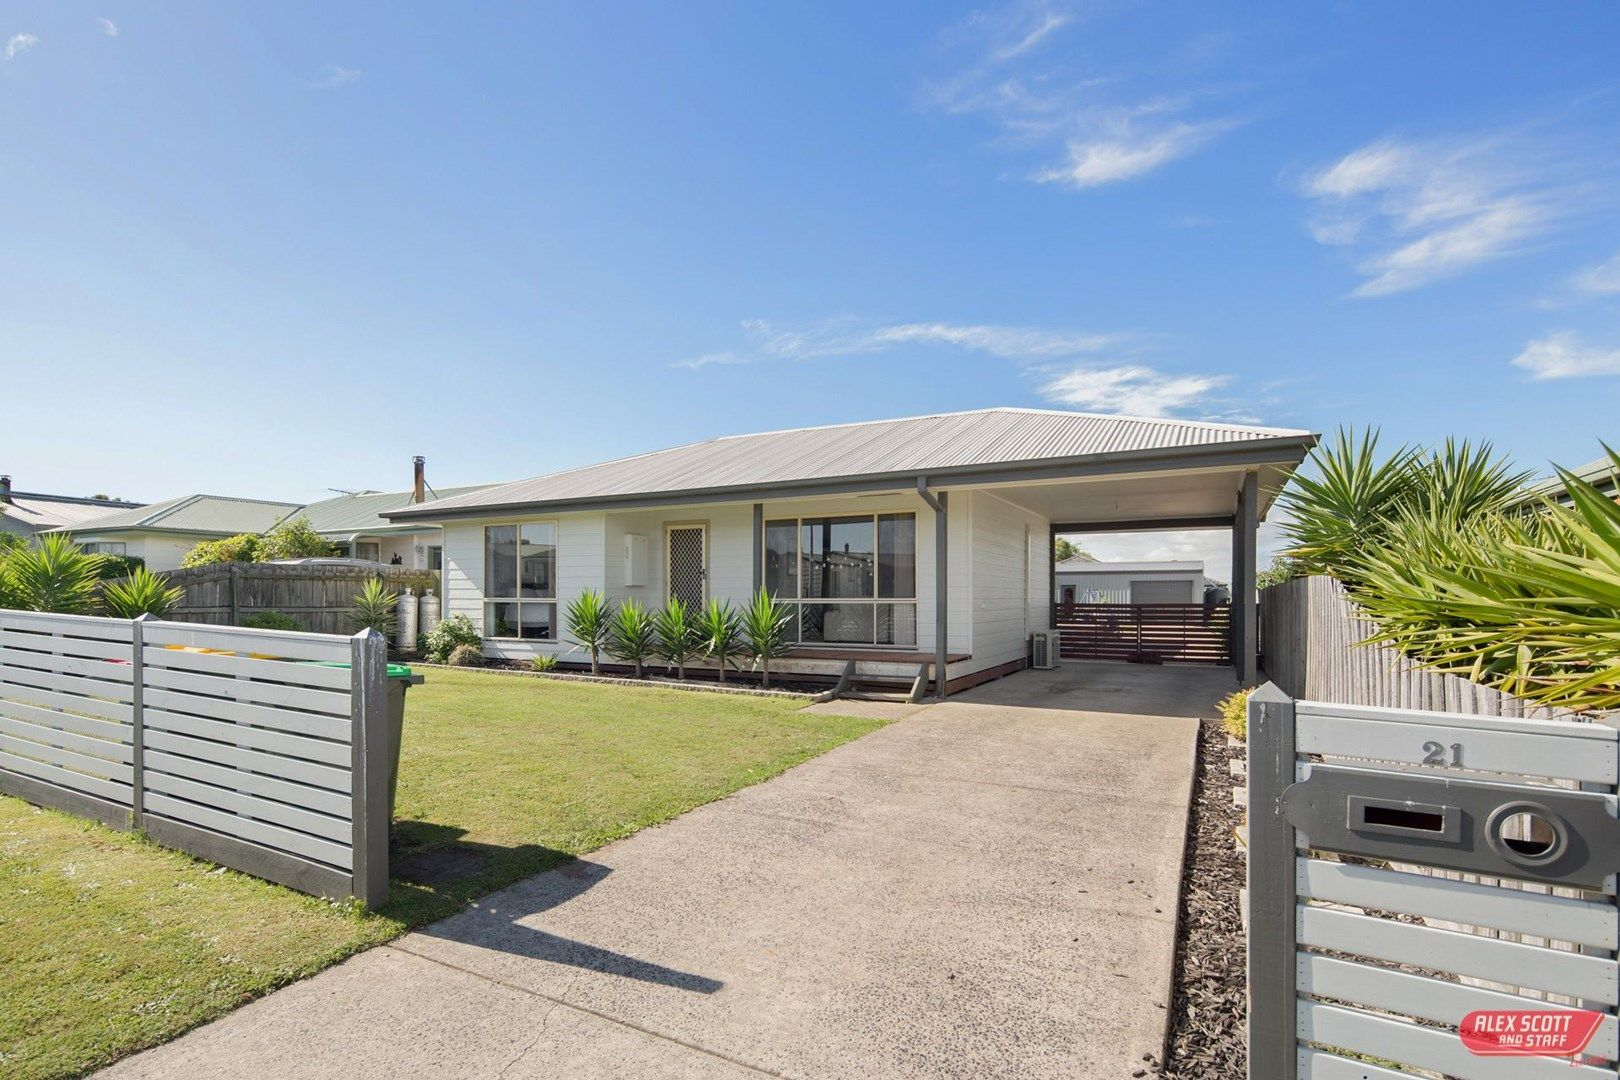 21 OXFORD WAY, Wonthaggi VIC 3995, Image 0